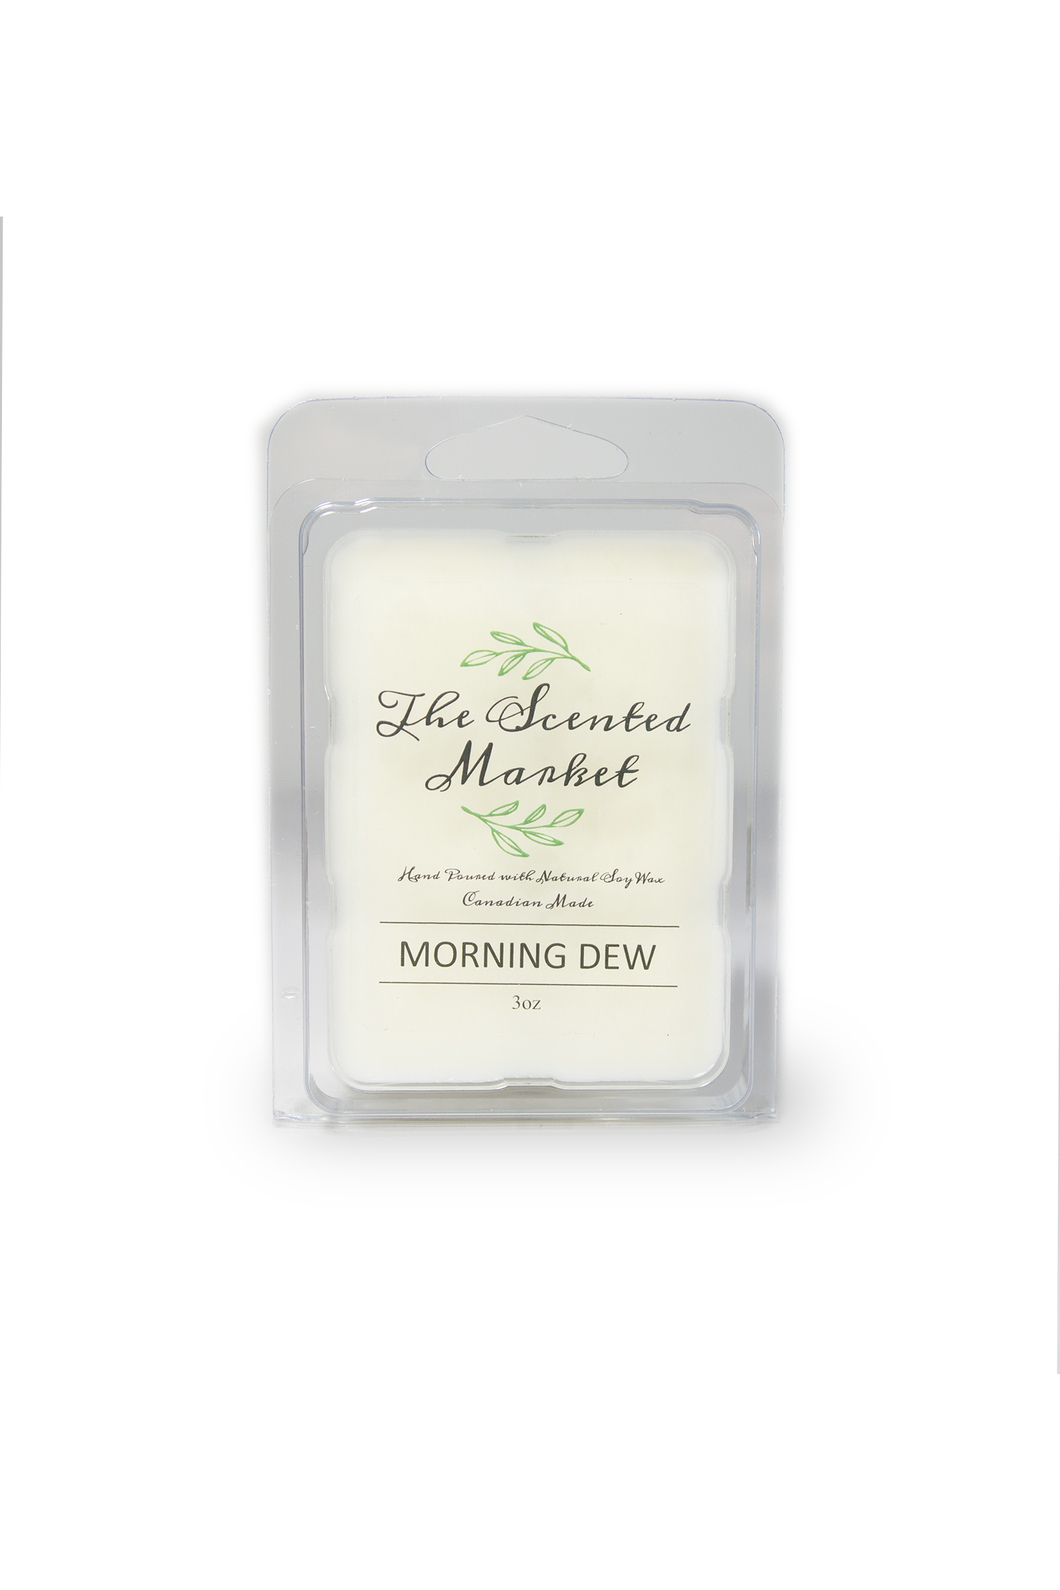 MORNING DEW SOY WAX MELT